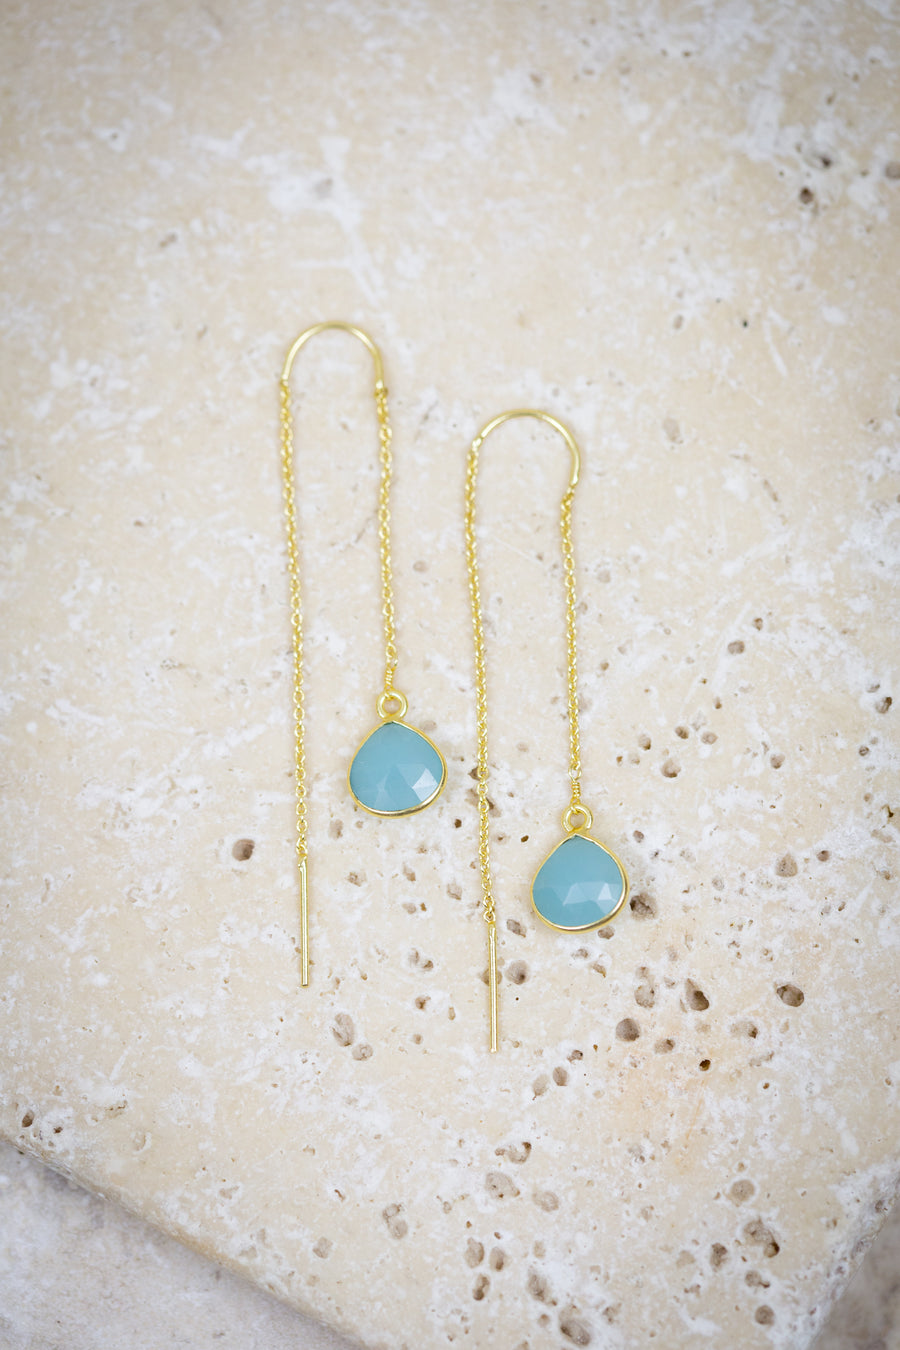 Aqua escape earrings for woman